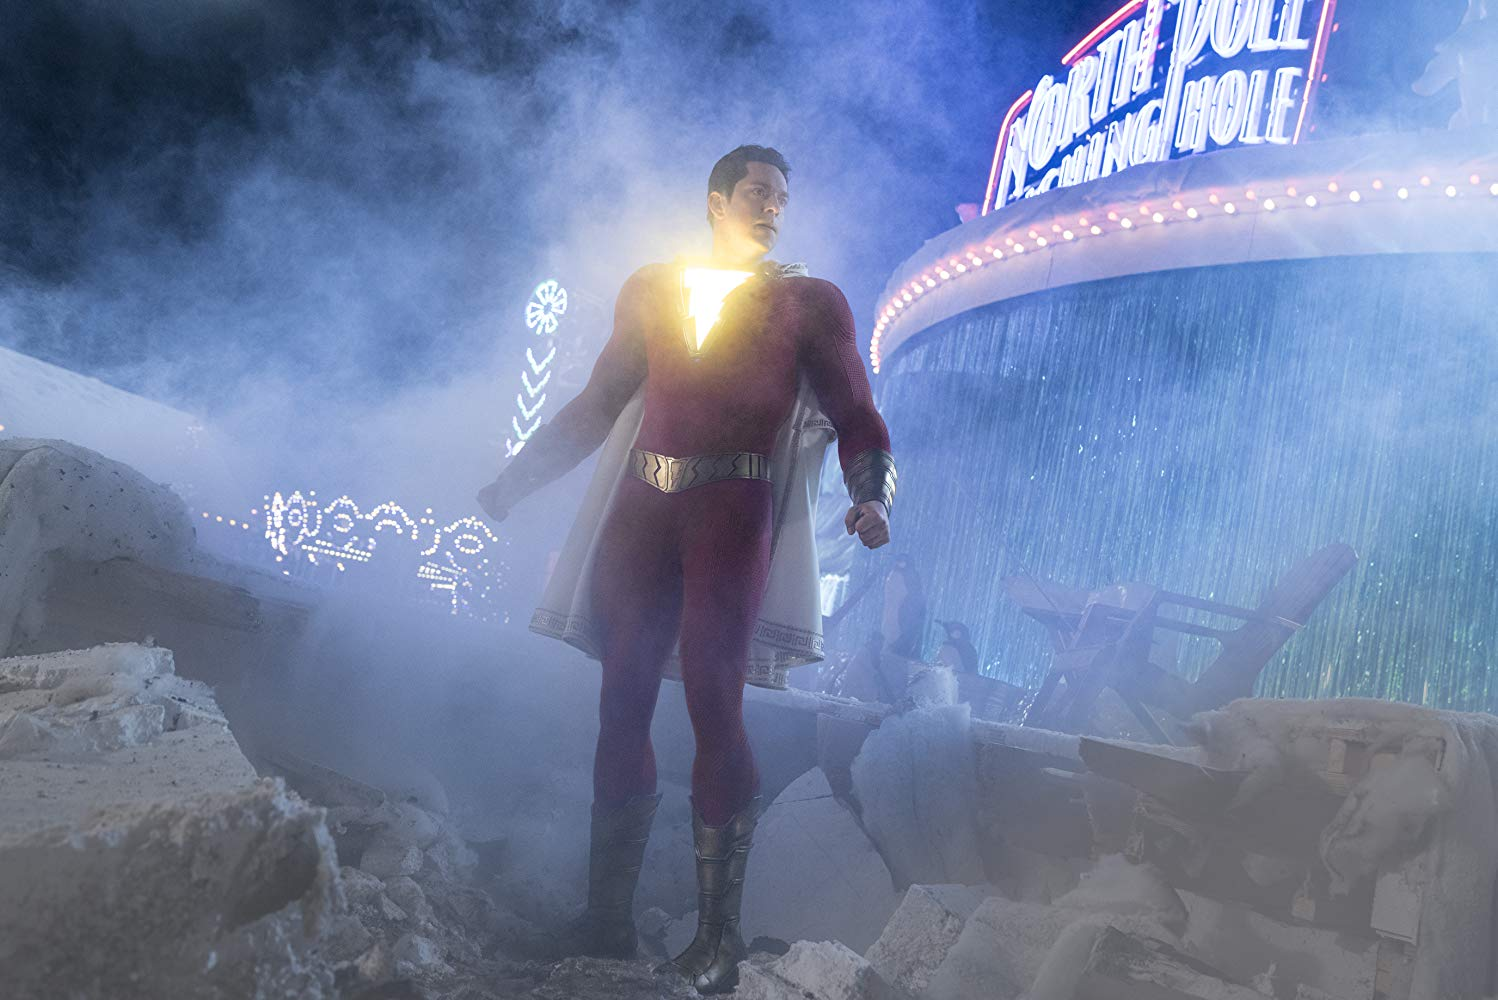 [News] SHAZAM Activation Coming to Comic-Con